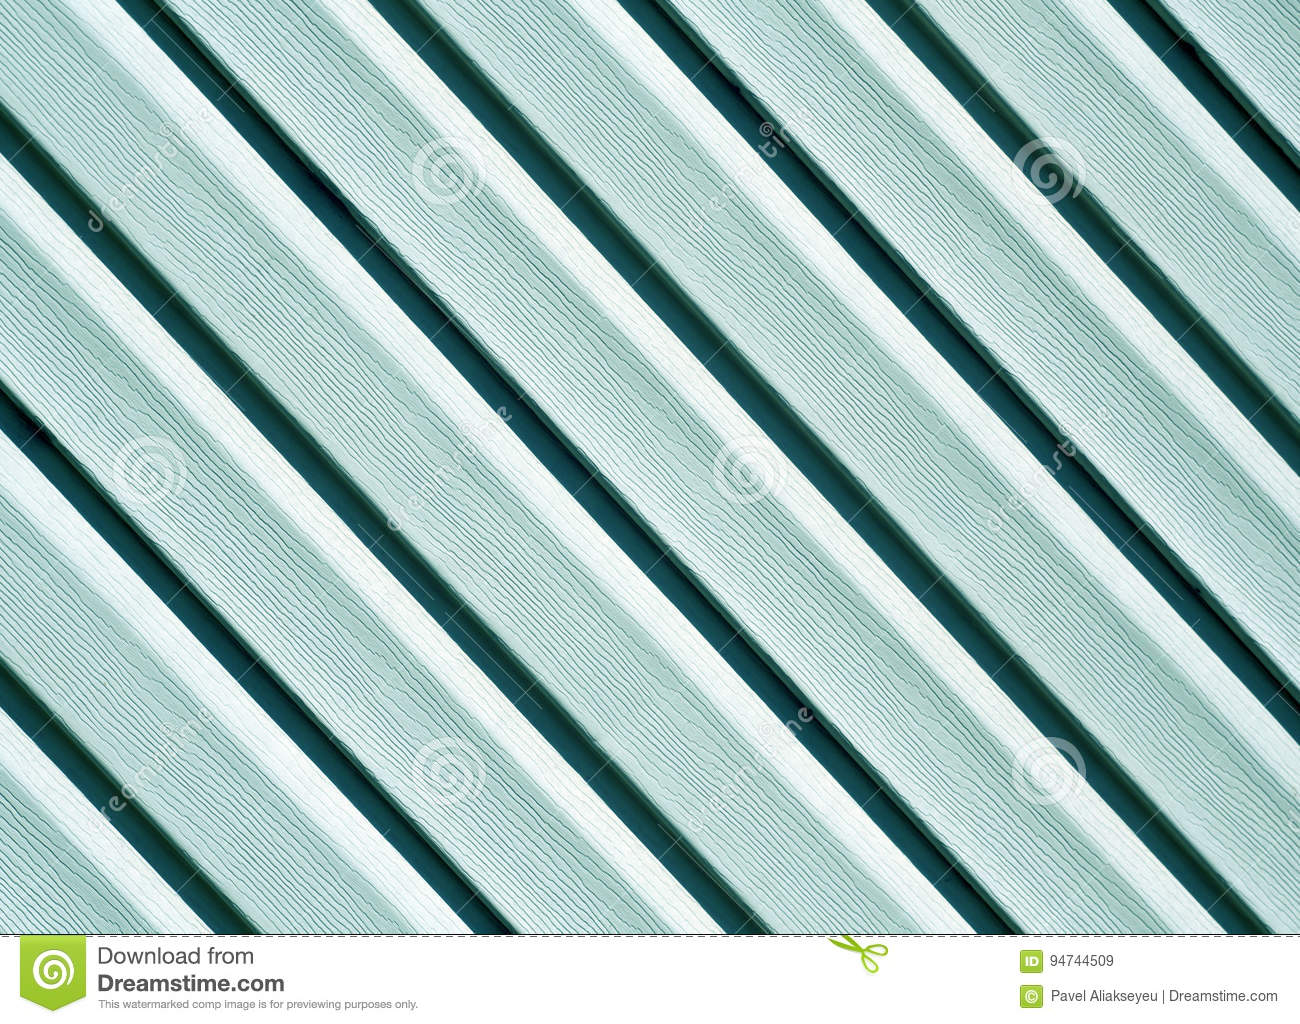 Cyan color pvc siding wall.